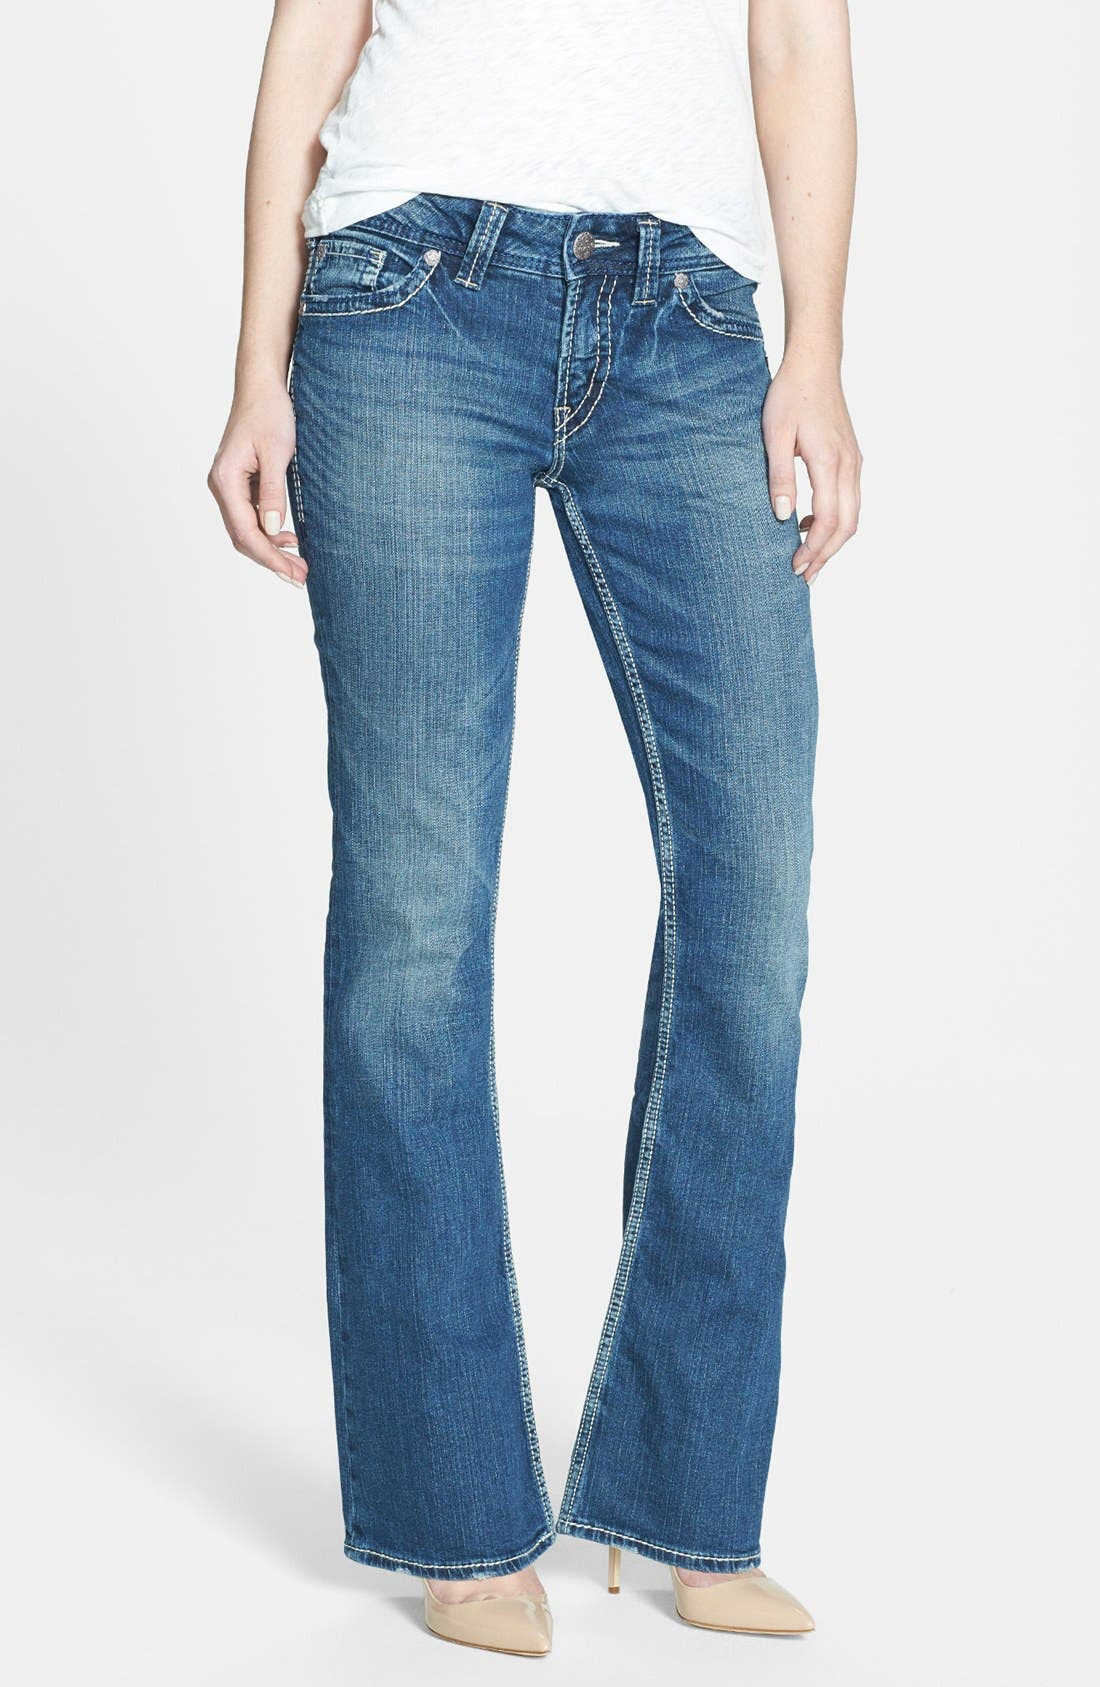 Alternate Image 1 Selected - Silver Jeans Co. 'Suki' Stretch Bootcut Jeans (Indigo)